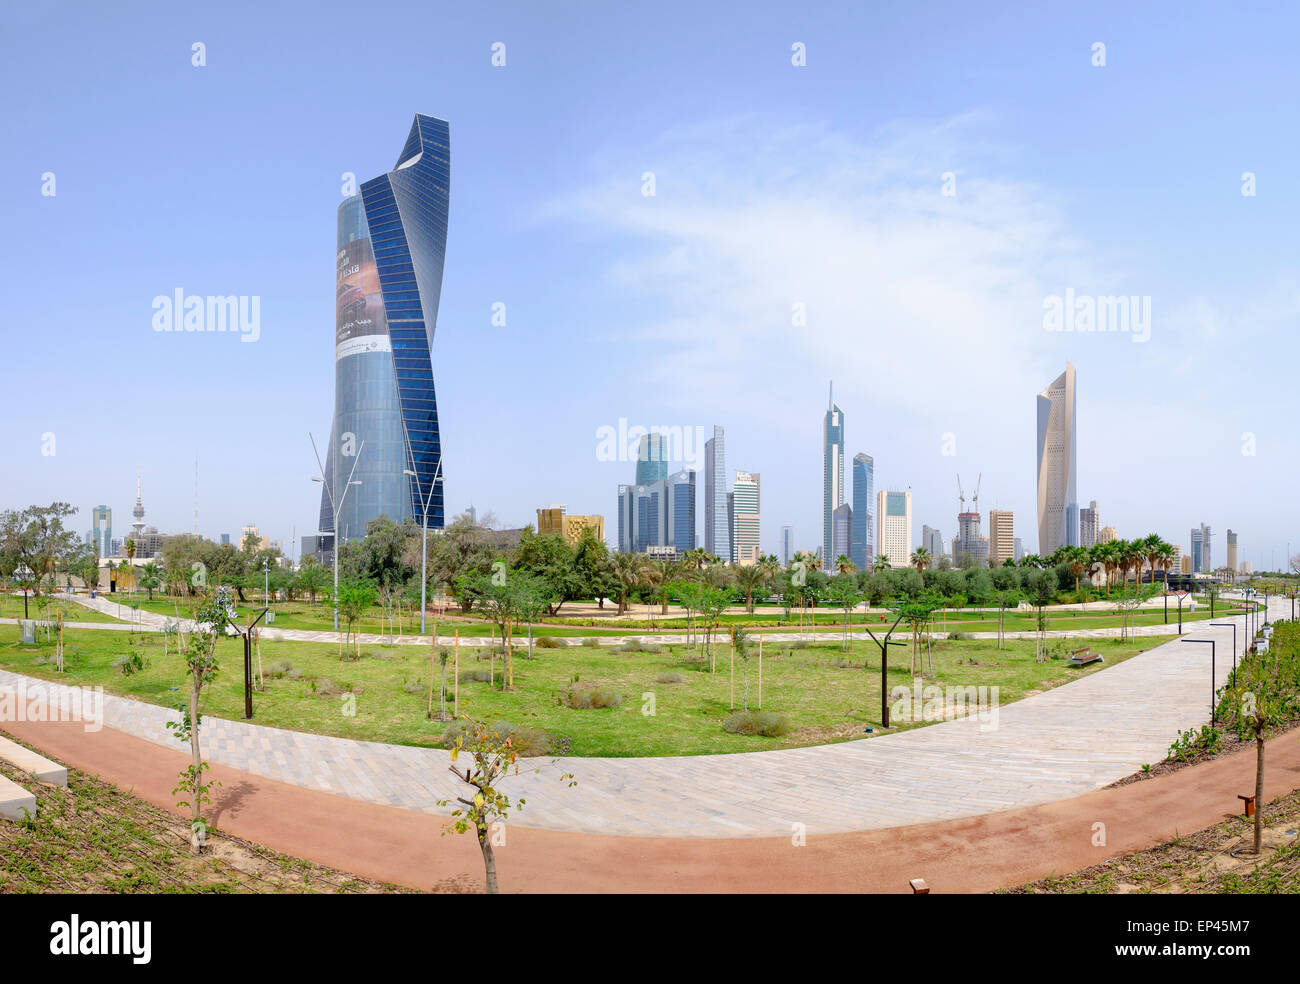 Skyline of Central Business District (CBD) from new Al Shaheed Park in  Kuwait City, Kuwait - Stock Image